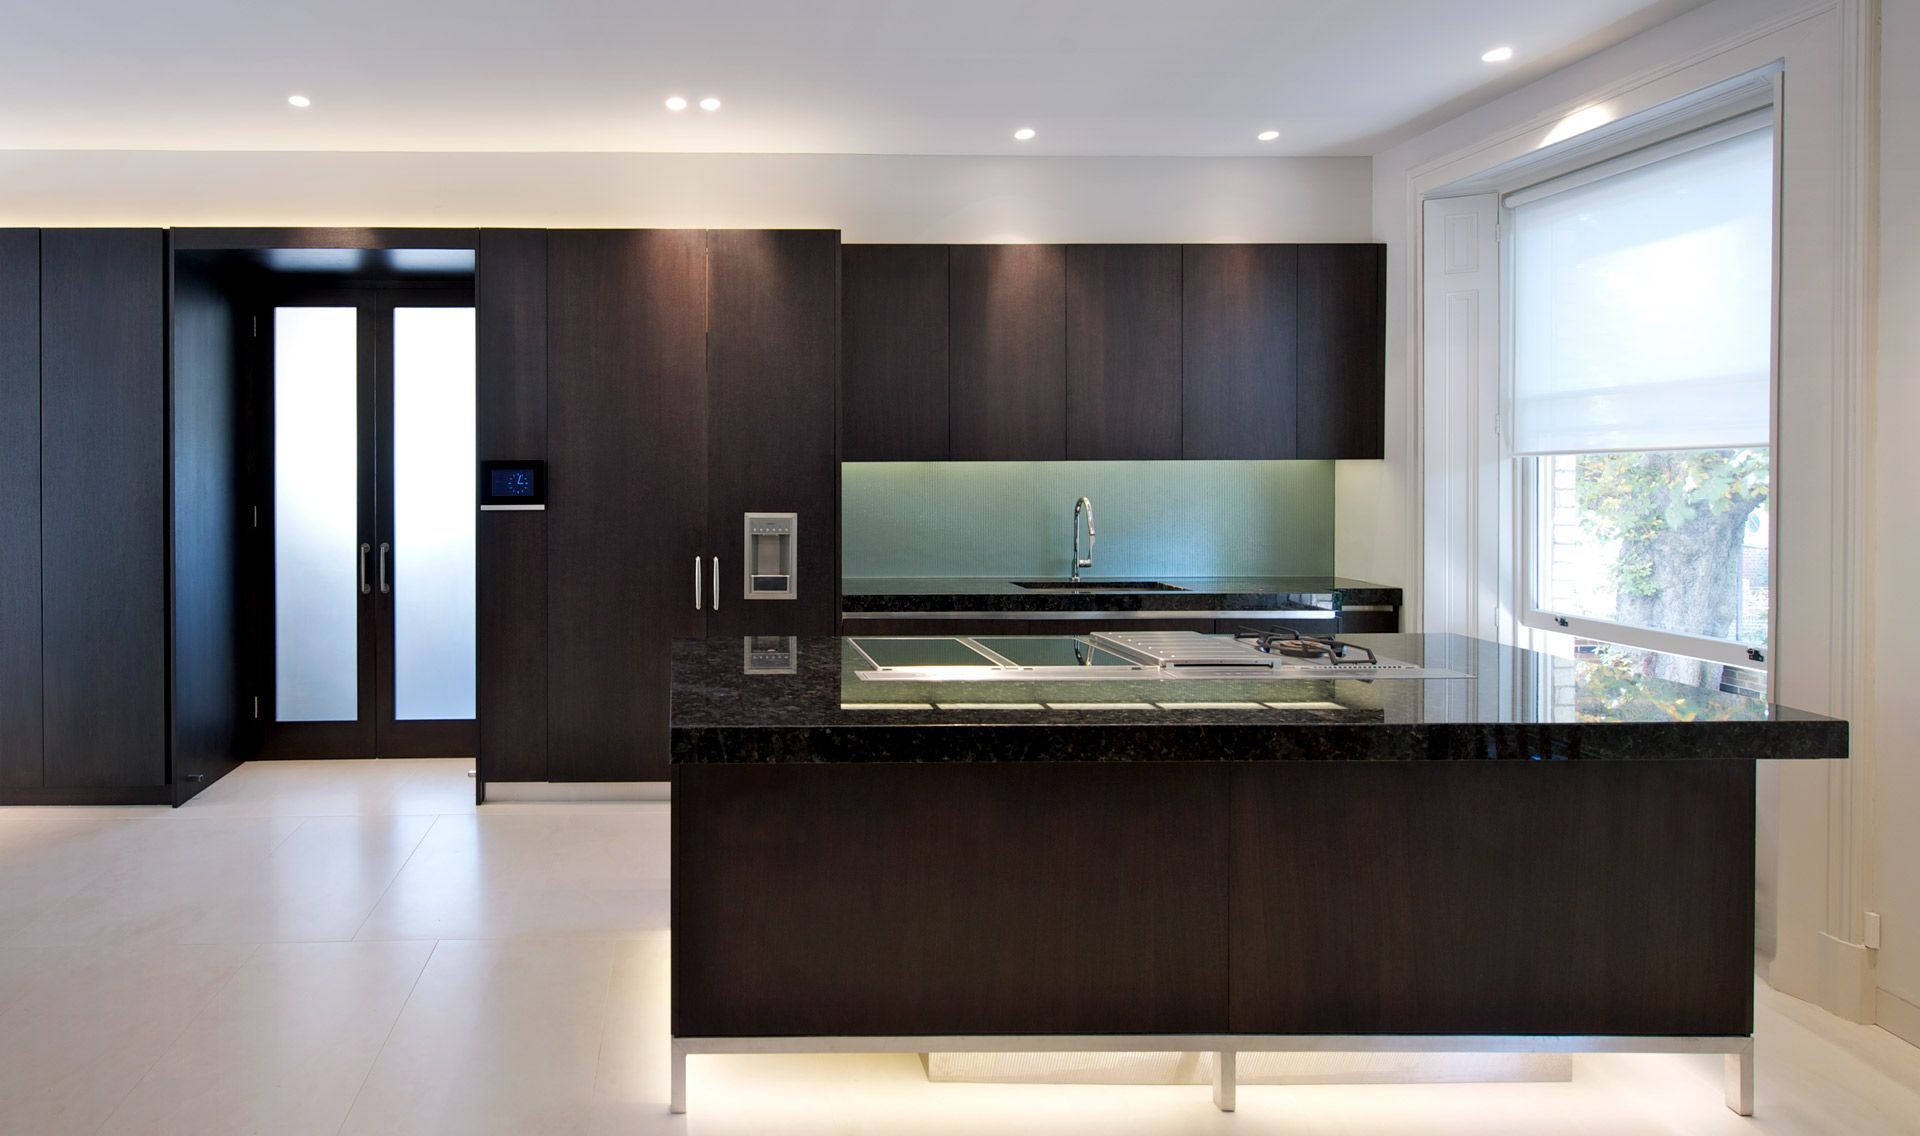 Kitchens - Greville Place - TinTab - Contemporary, bespoke, design ...